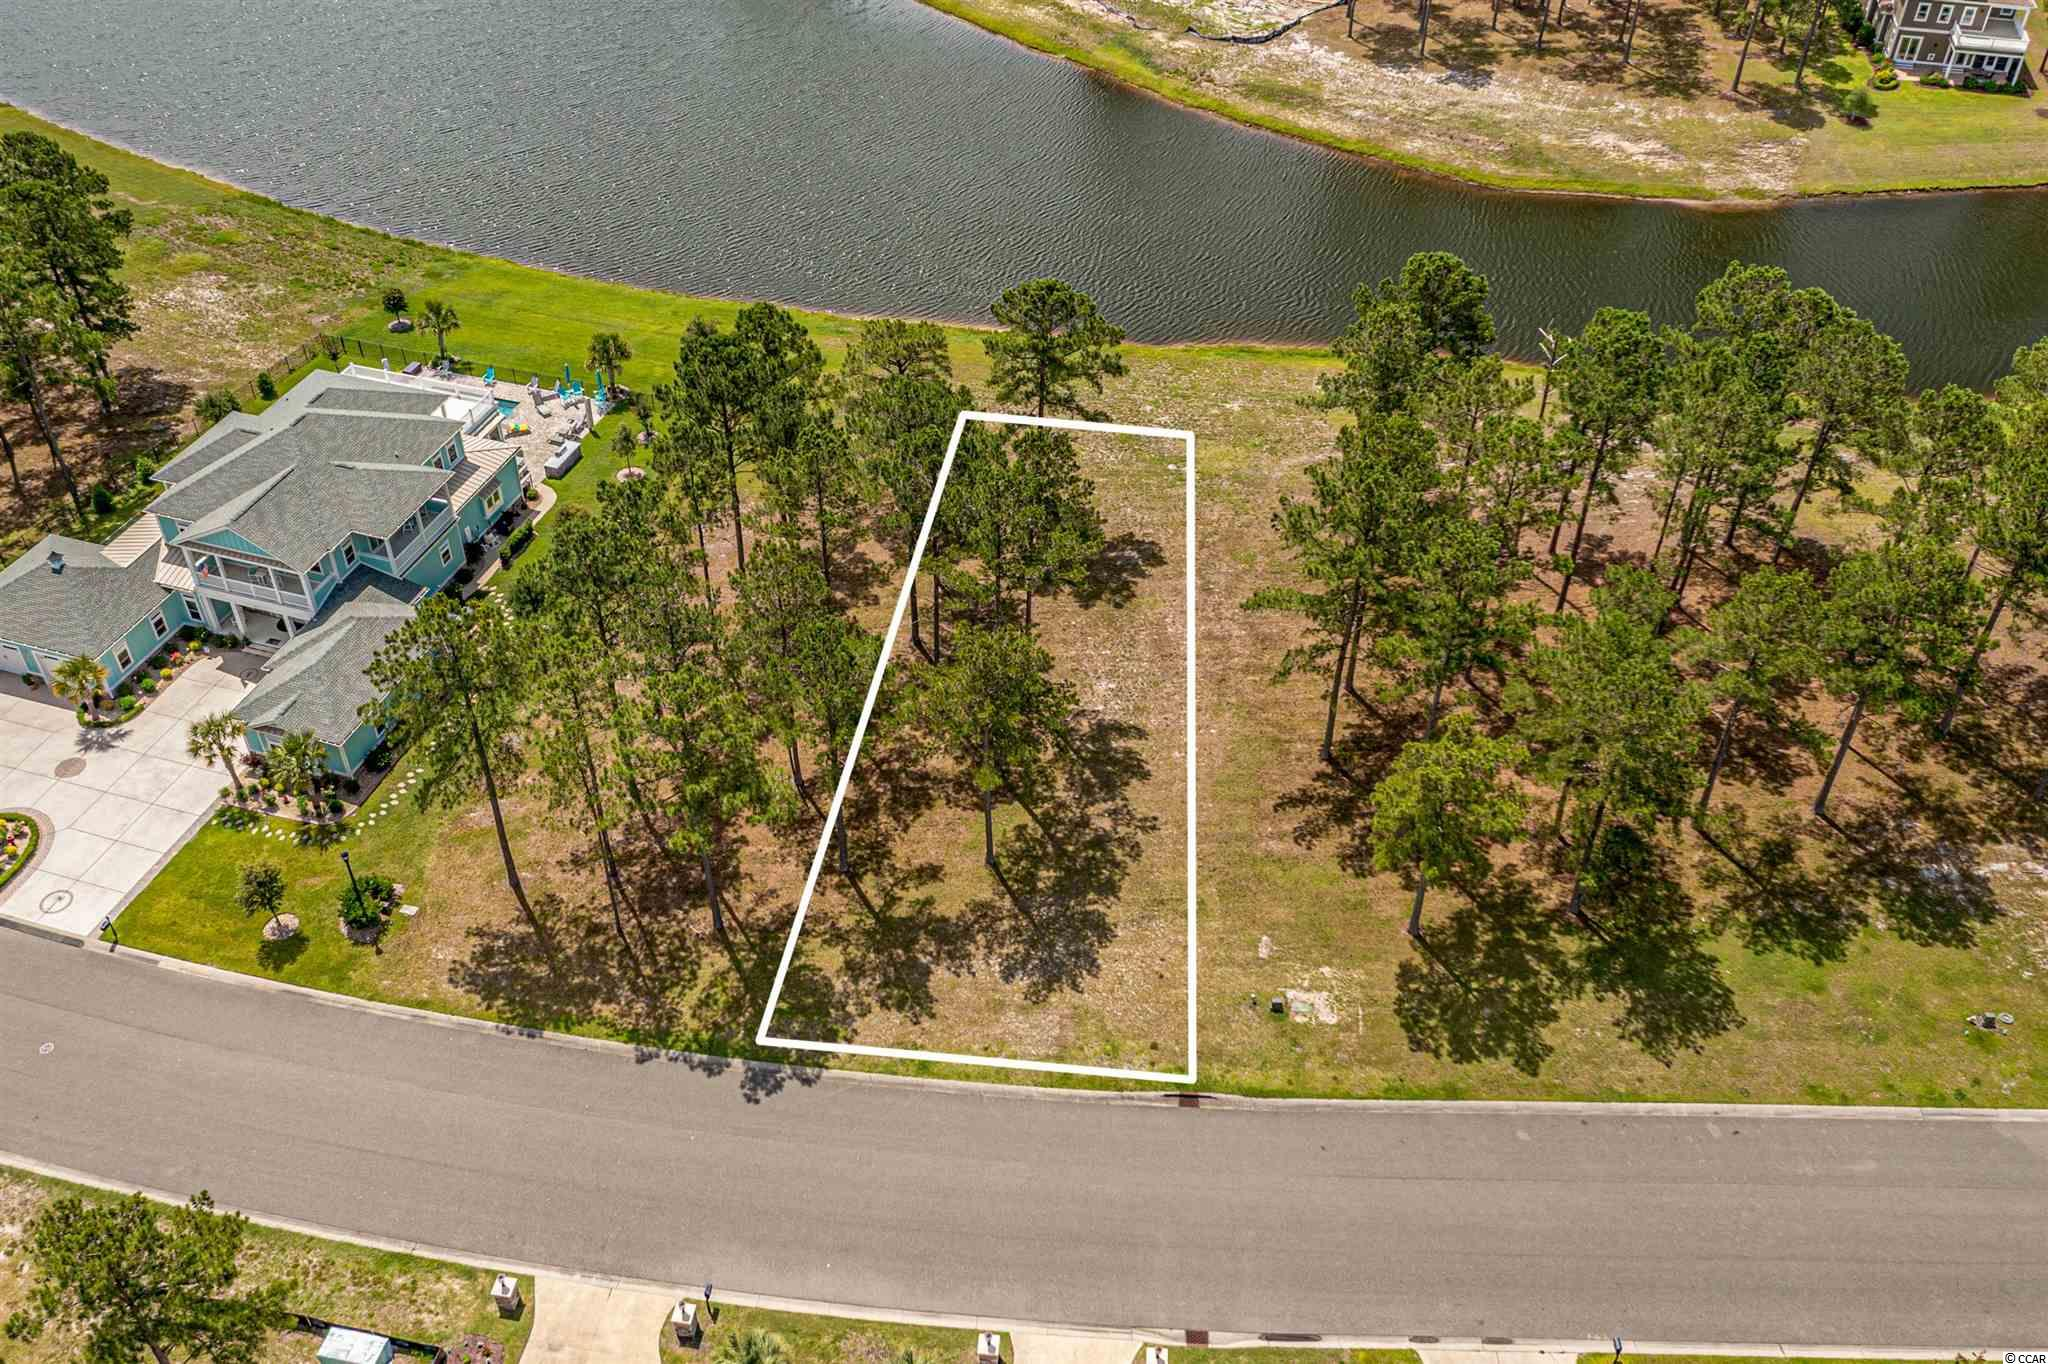 Fantastic Lake Front lot in the prestigious gated community of Waterbridge. Enjoy pristine views of Palmetto lake, over 60 acres perfect for kayaking or canoeing. Waterbridge is home to the largest residential swimming pool in South Carolina with Olympic-size swimming lanes, a jetted spa, and zero entry section. Homeowners share a resort-style clubhouse, 24-hour fitness center, and courts for tennis, basketball, sand volleyball, and bocce. Purchase now and build your Coastal Dream Home with no time restrictions. All of this is minutes from award winning schools, the beach, shopping, golf, and dining.